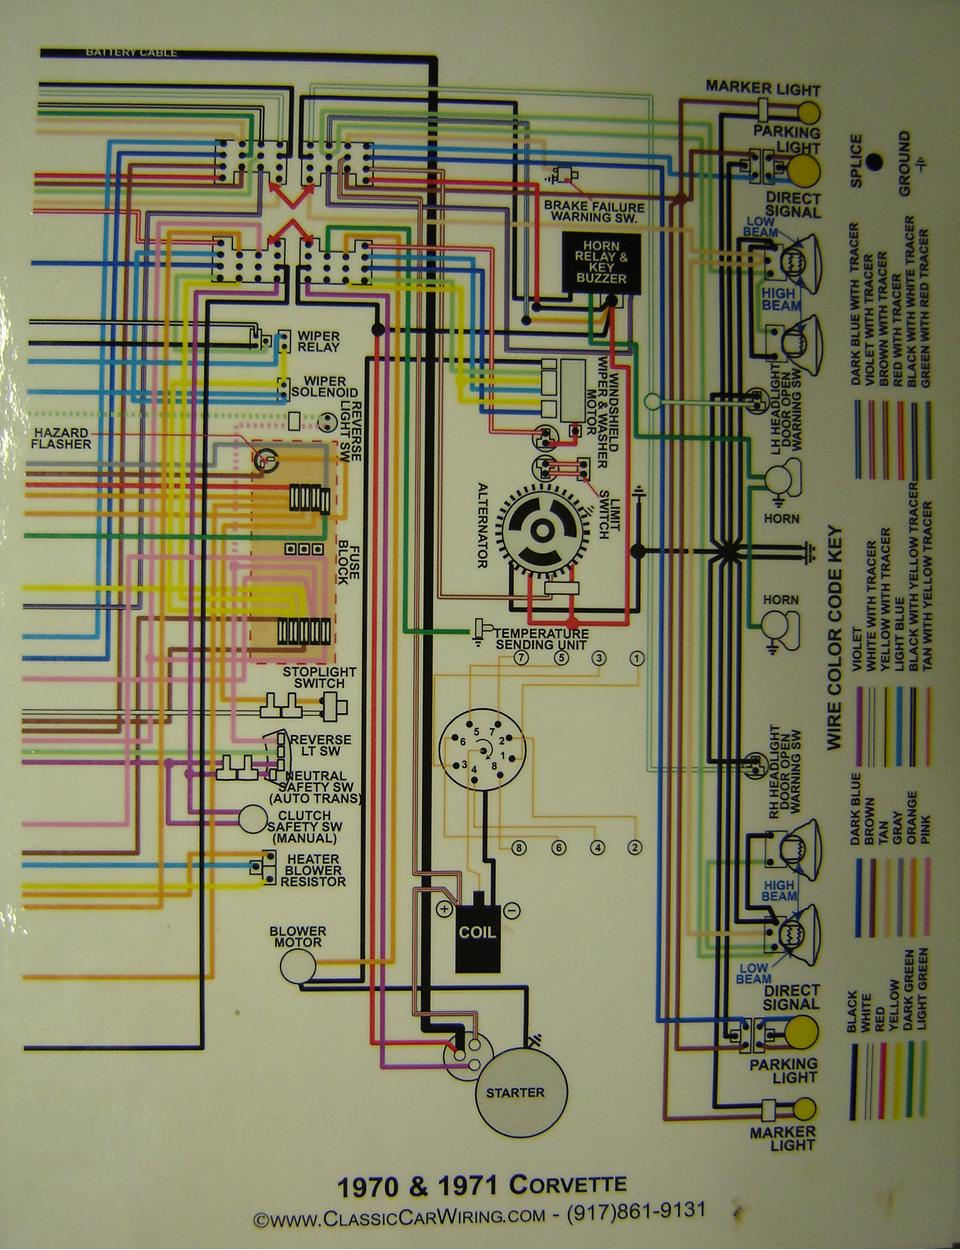 1970 71 corvette color wiring diagram B chevy diagrams 1989 corvette engine wiring harness at virtualis.co